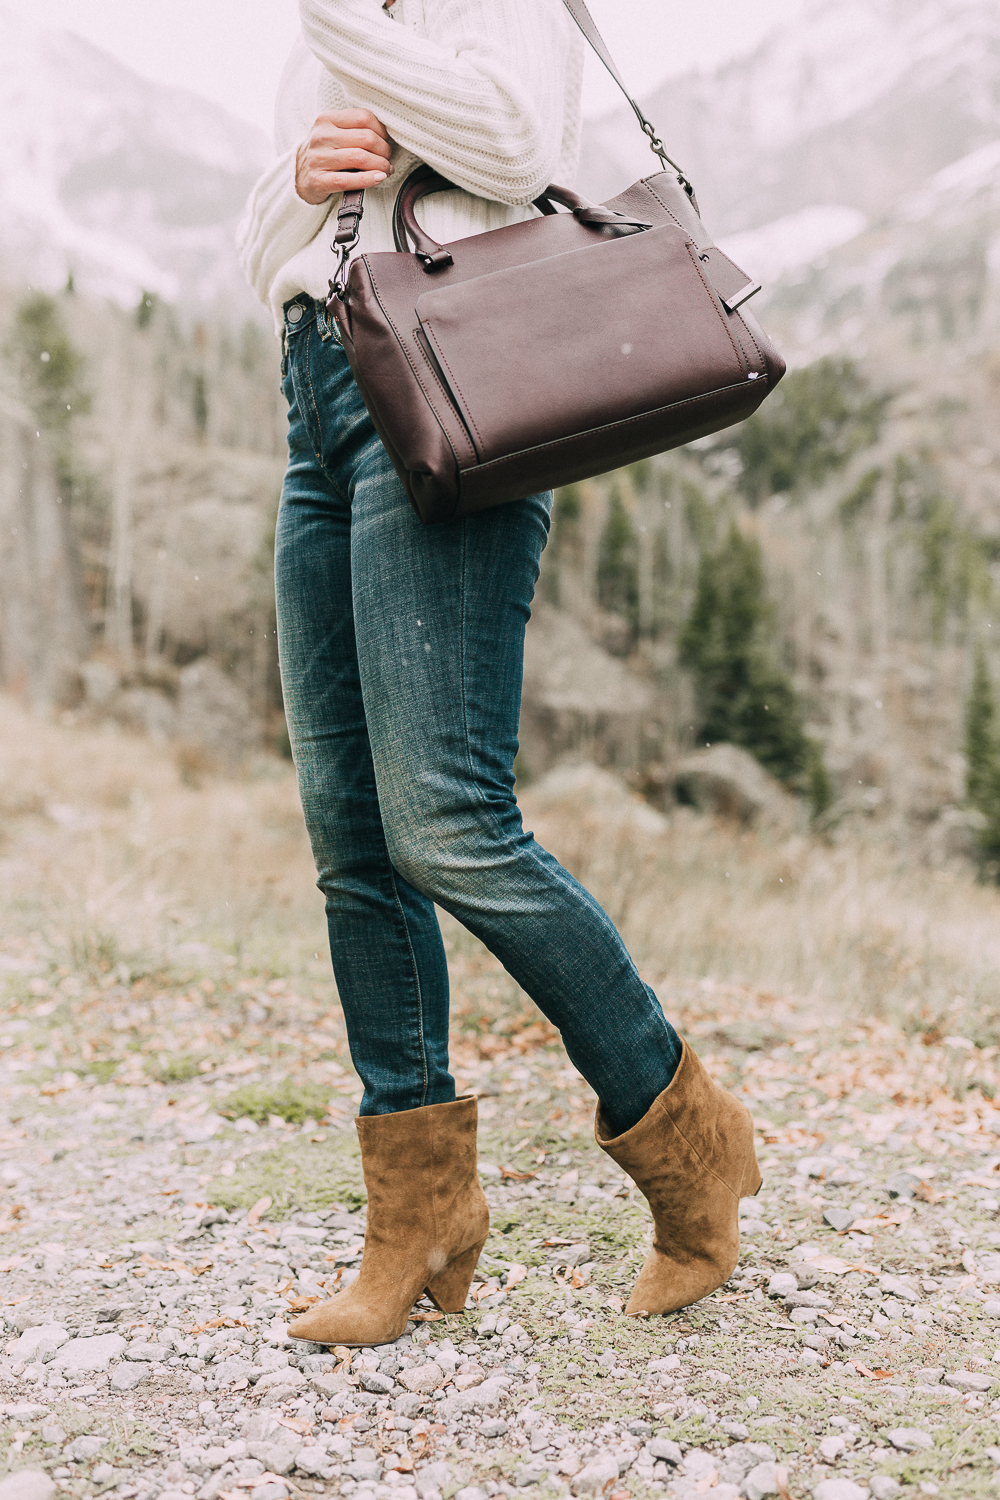 Suede Booties by Vince Camuto paired with white turtleneck cable knit sweater, burgundy tote bag, and white wool coat on blonde woman in the mountains